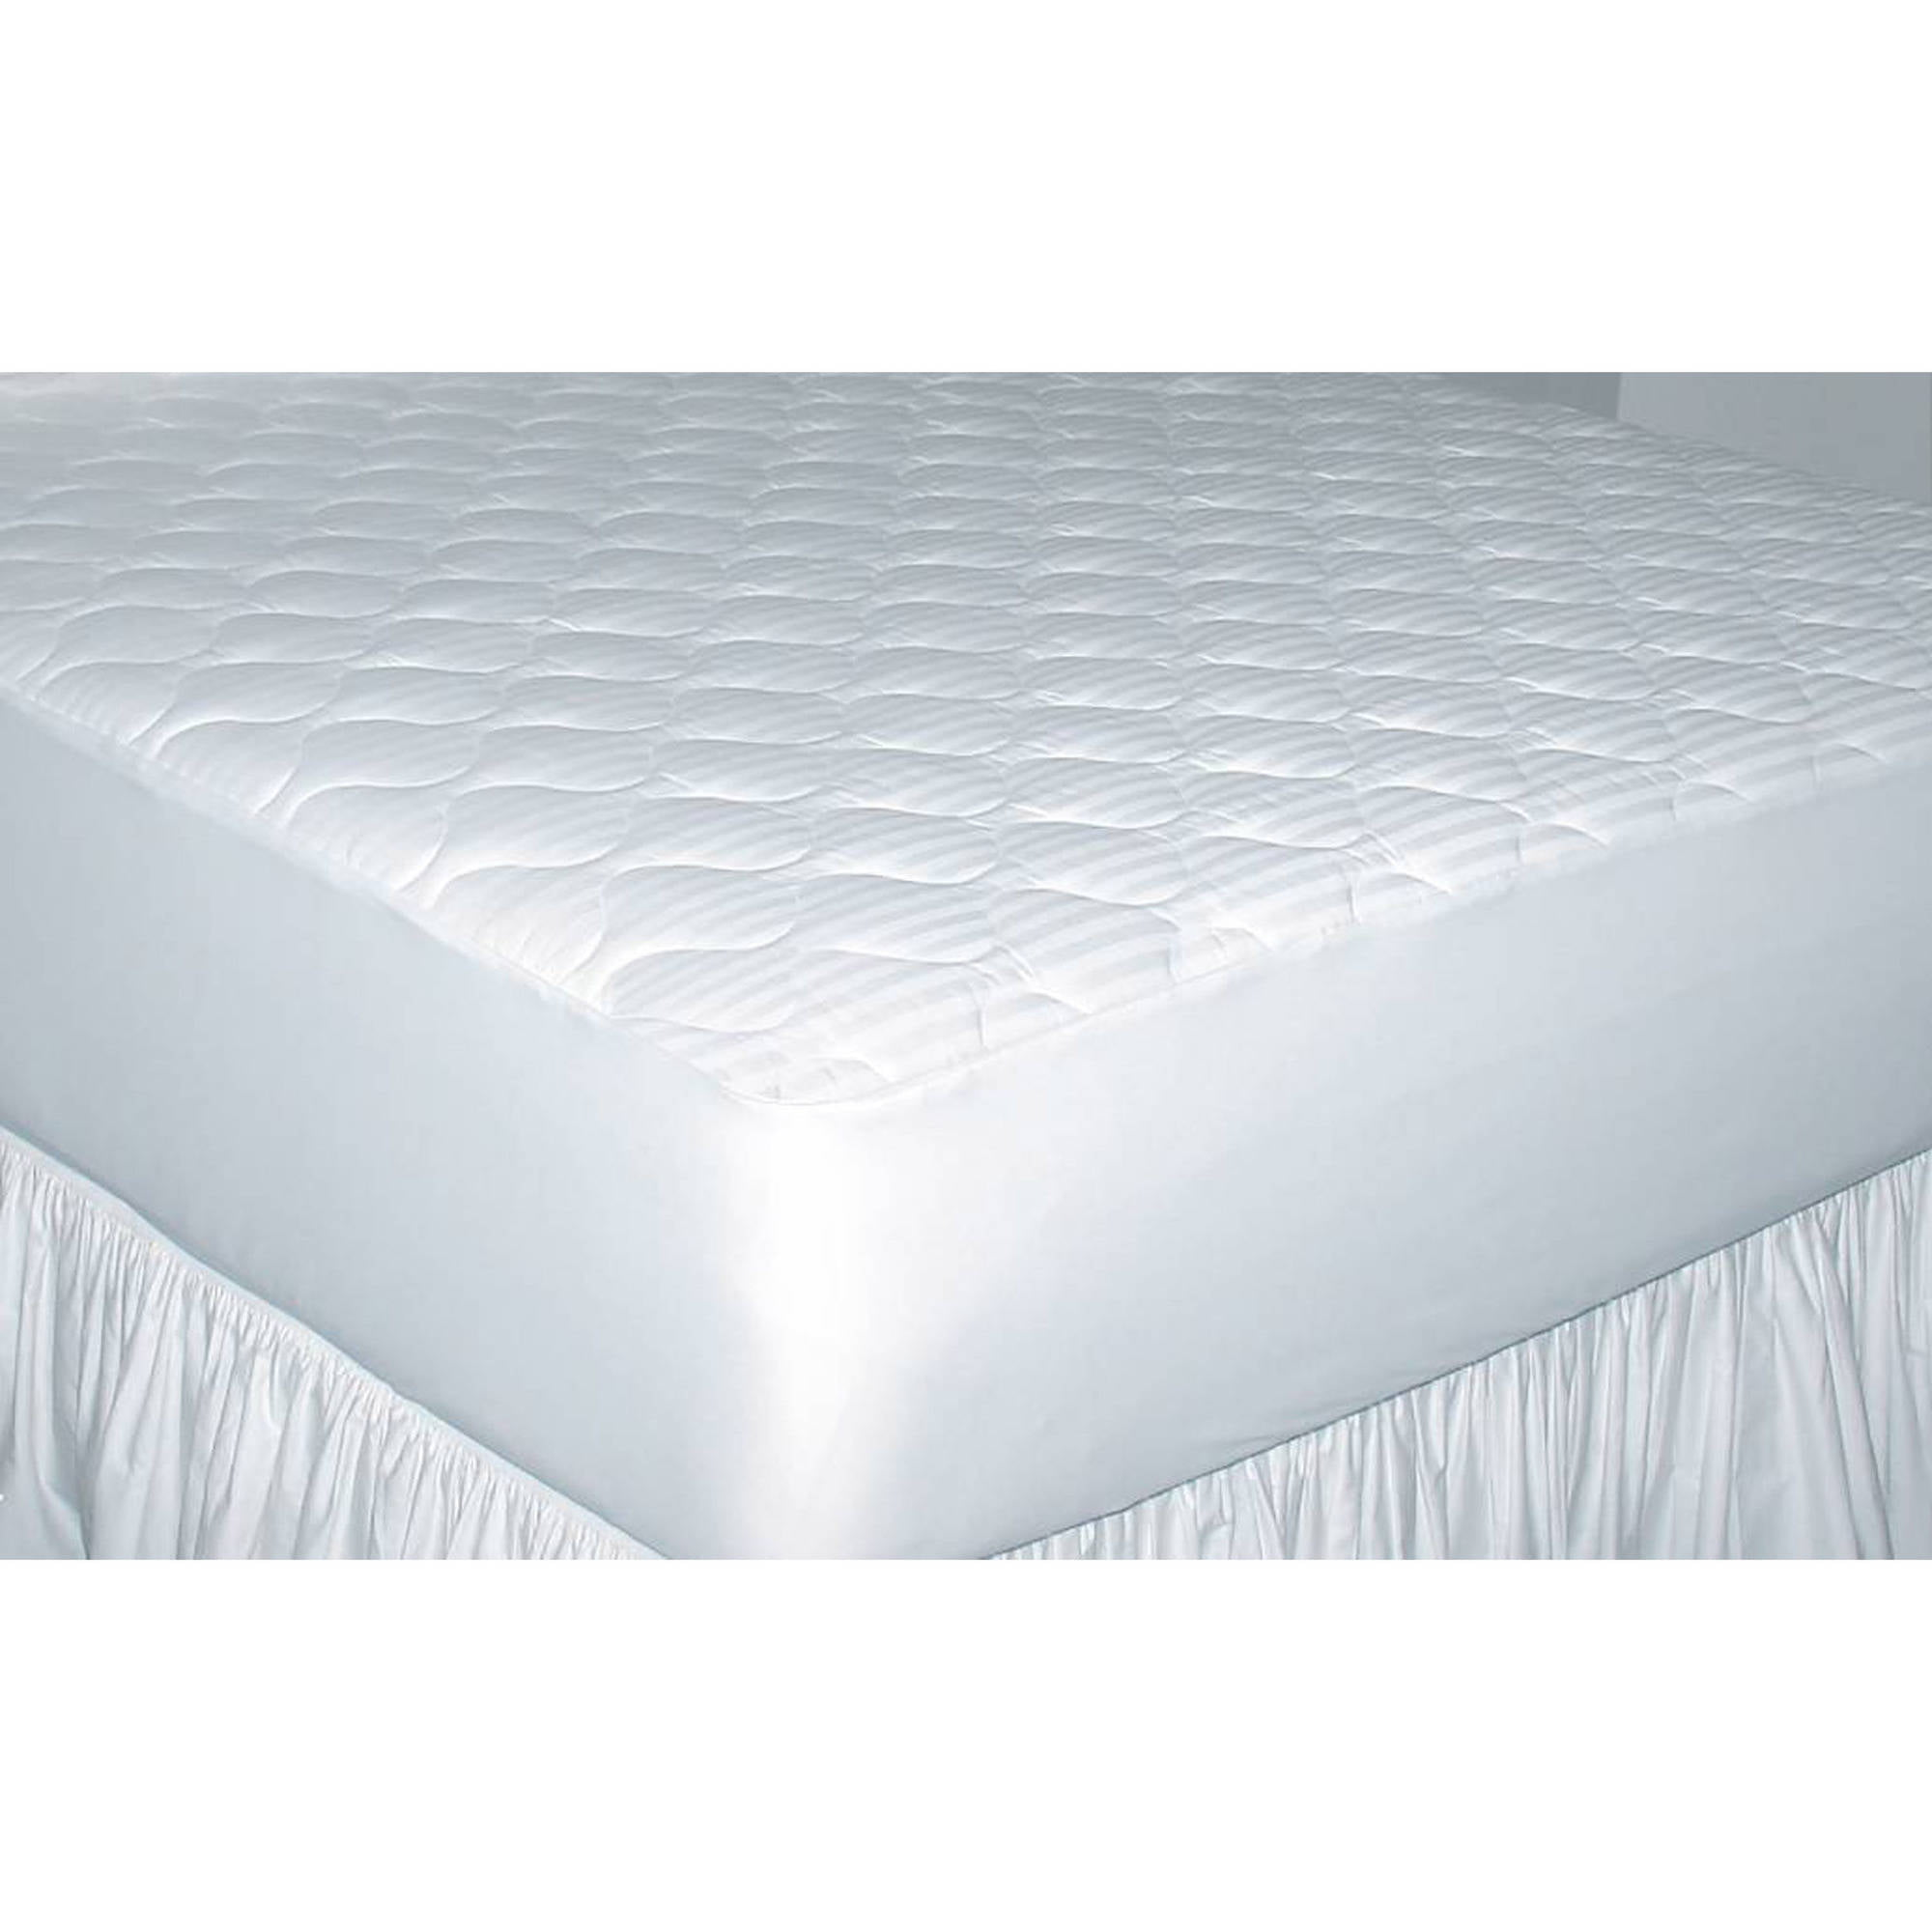 twin xl waterproof mattress cover Quiet Comfort Waterproof Mattress Pad   Walmart.com twin xl waterproof mattress cover